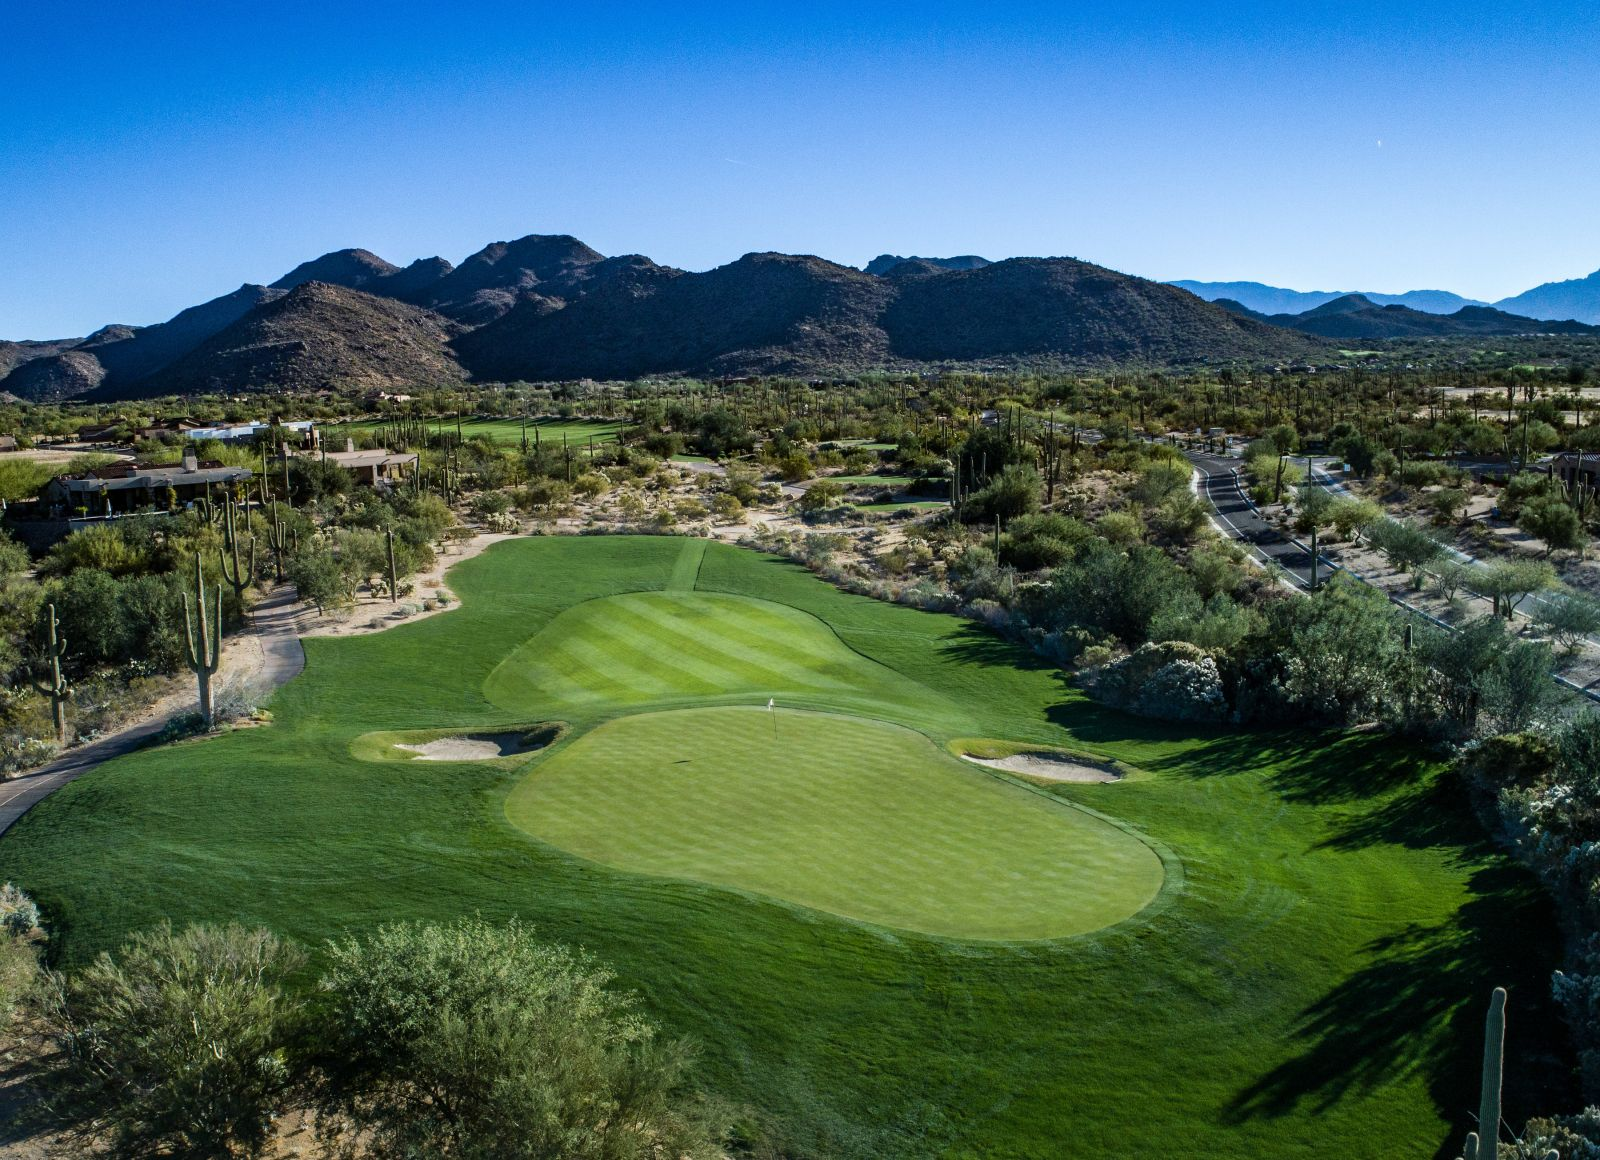 Aerial view of hole 8 on the Wild Burro course